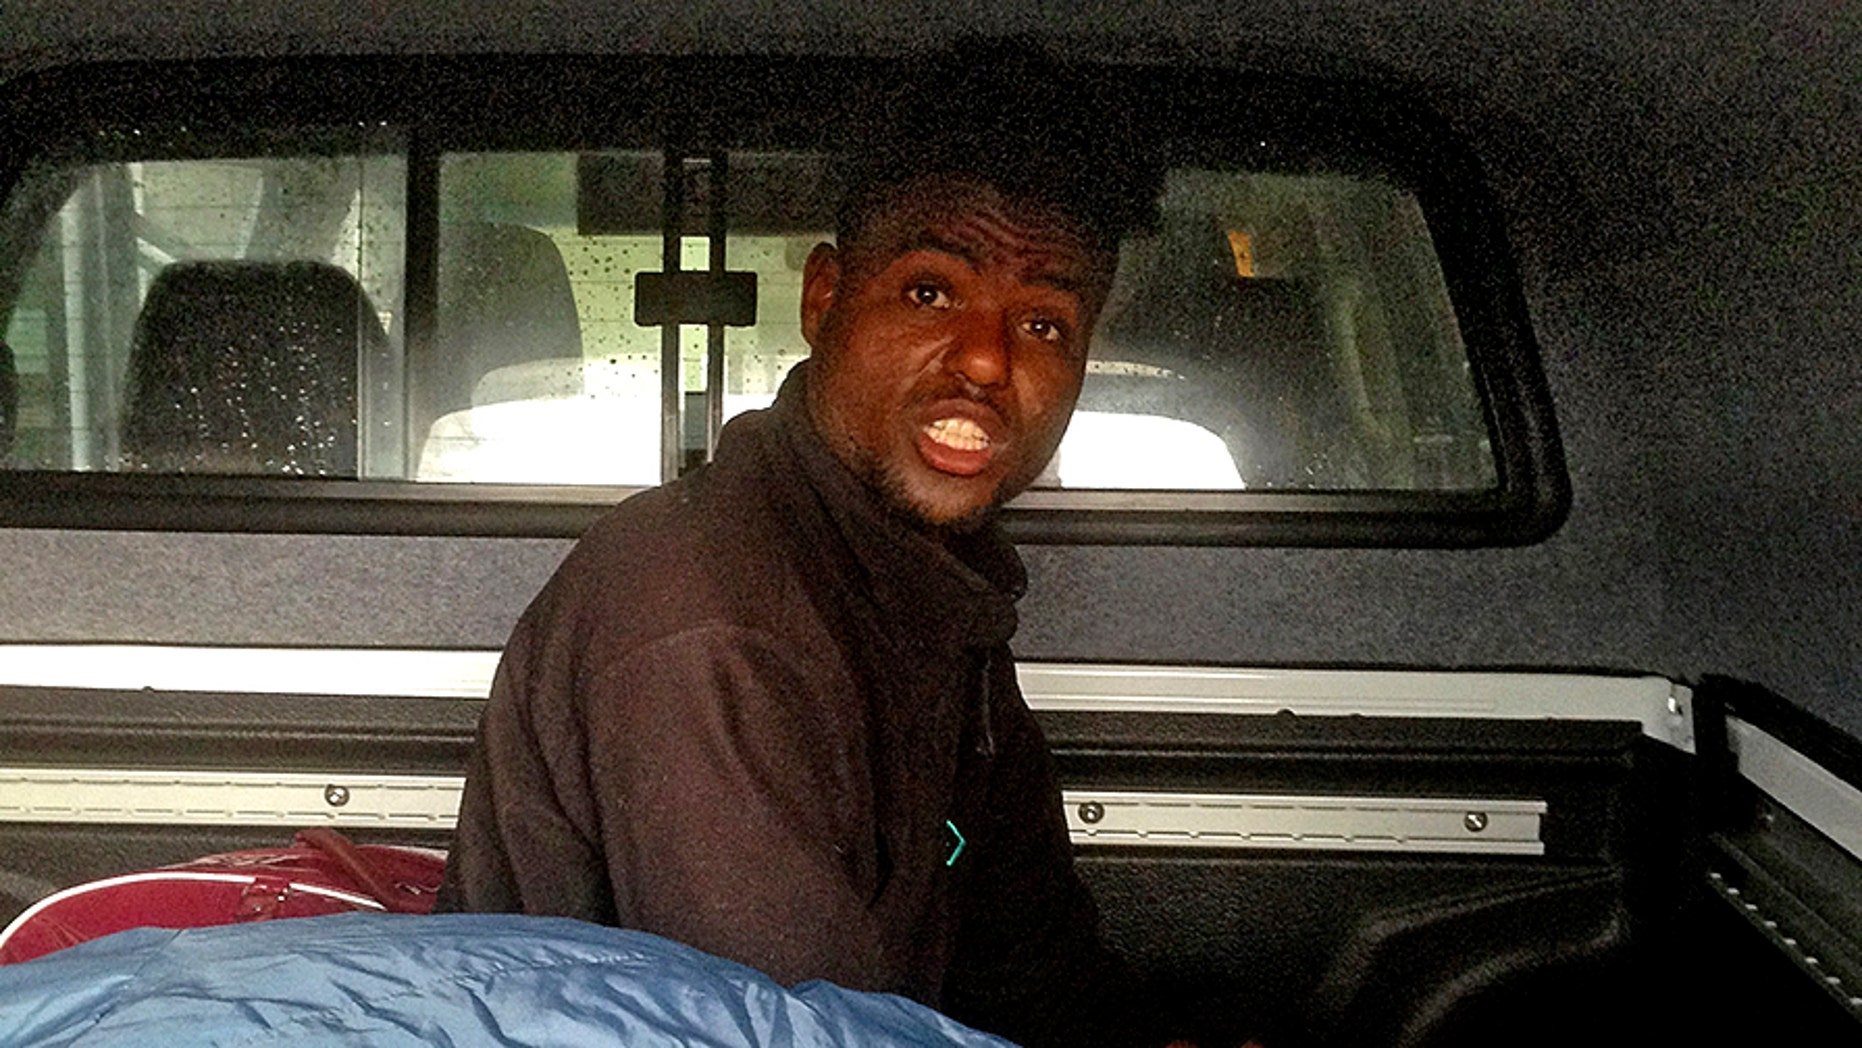 Paul Edmunds from Caersws, Wales opened his car boot after arriving home from a recent trip to France with friends, to find this migrant hiding inside. It's believed that the refugee snuck into the vehicle when they made a pitstop in Calais, France.